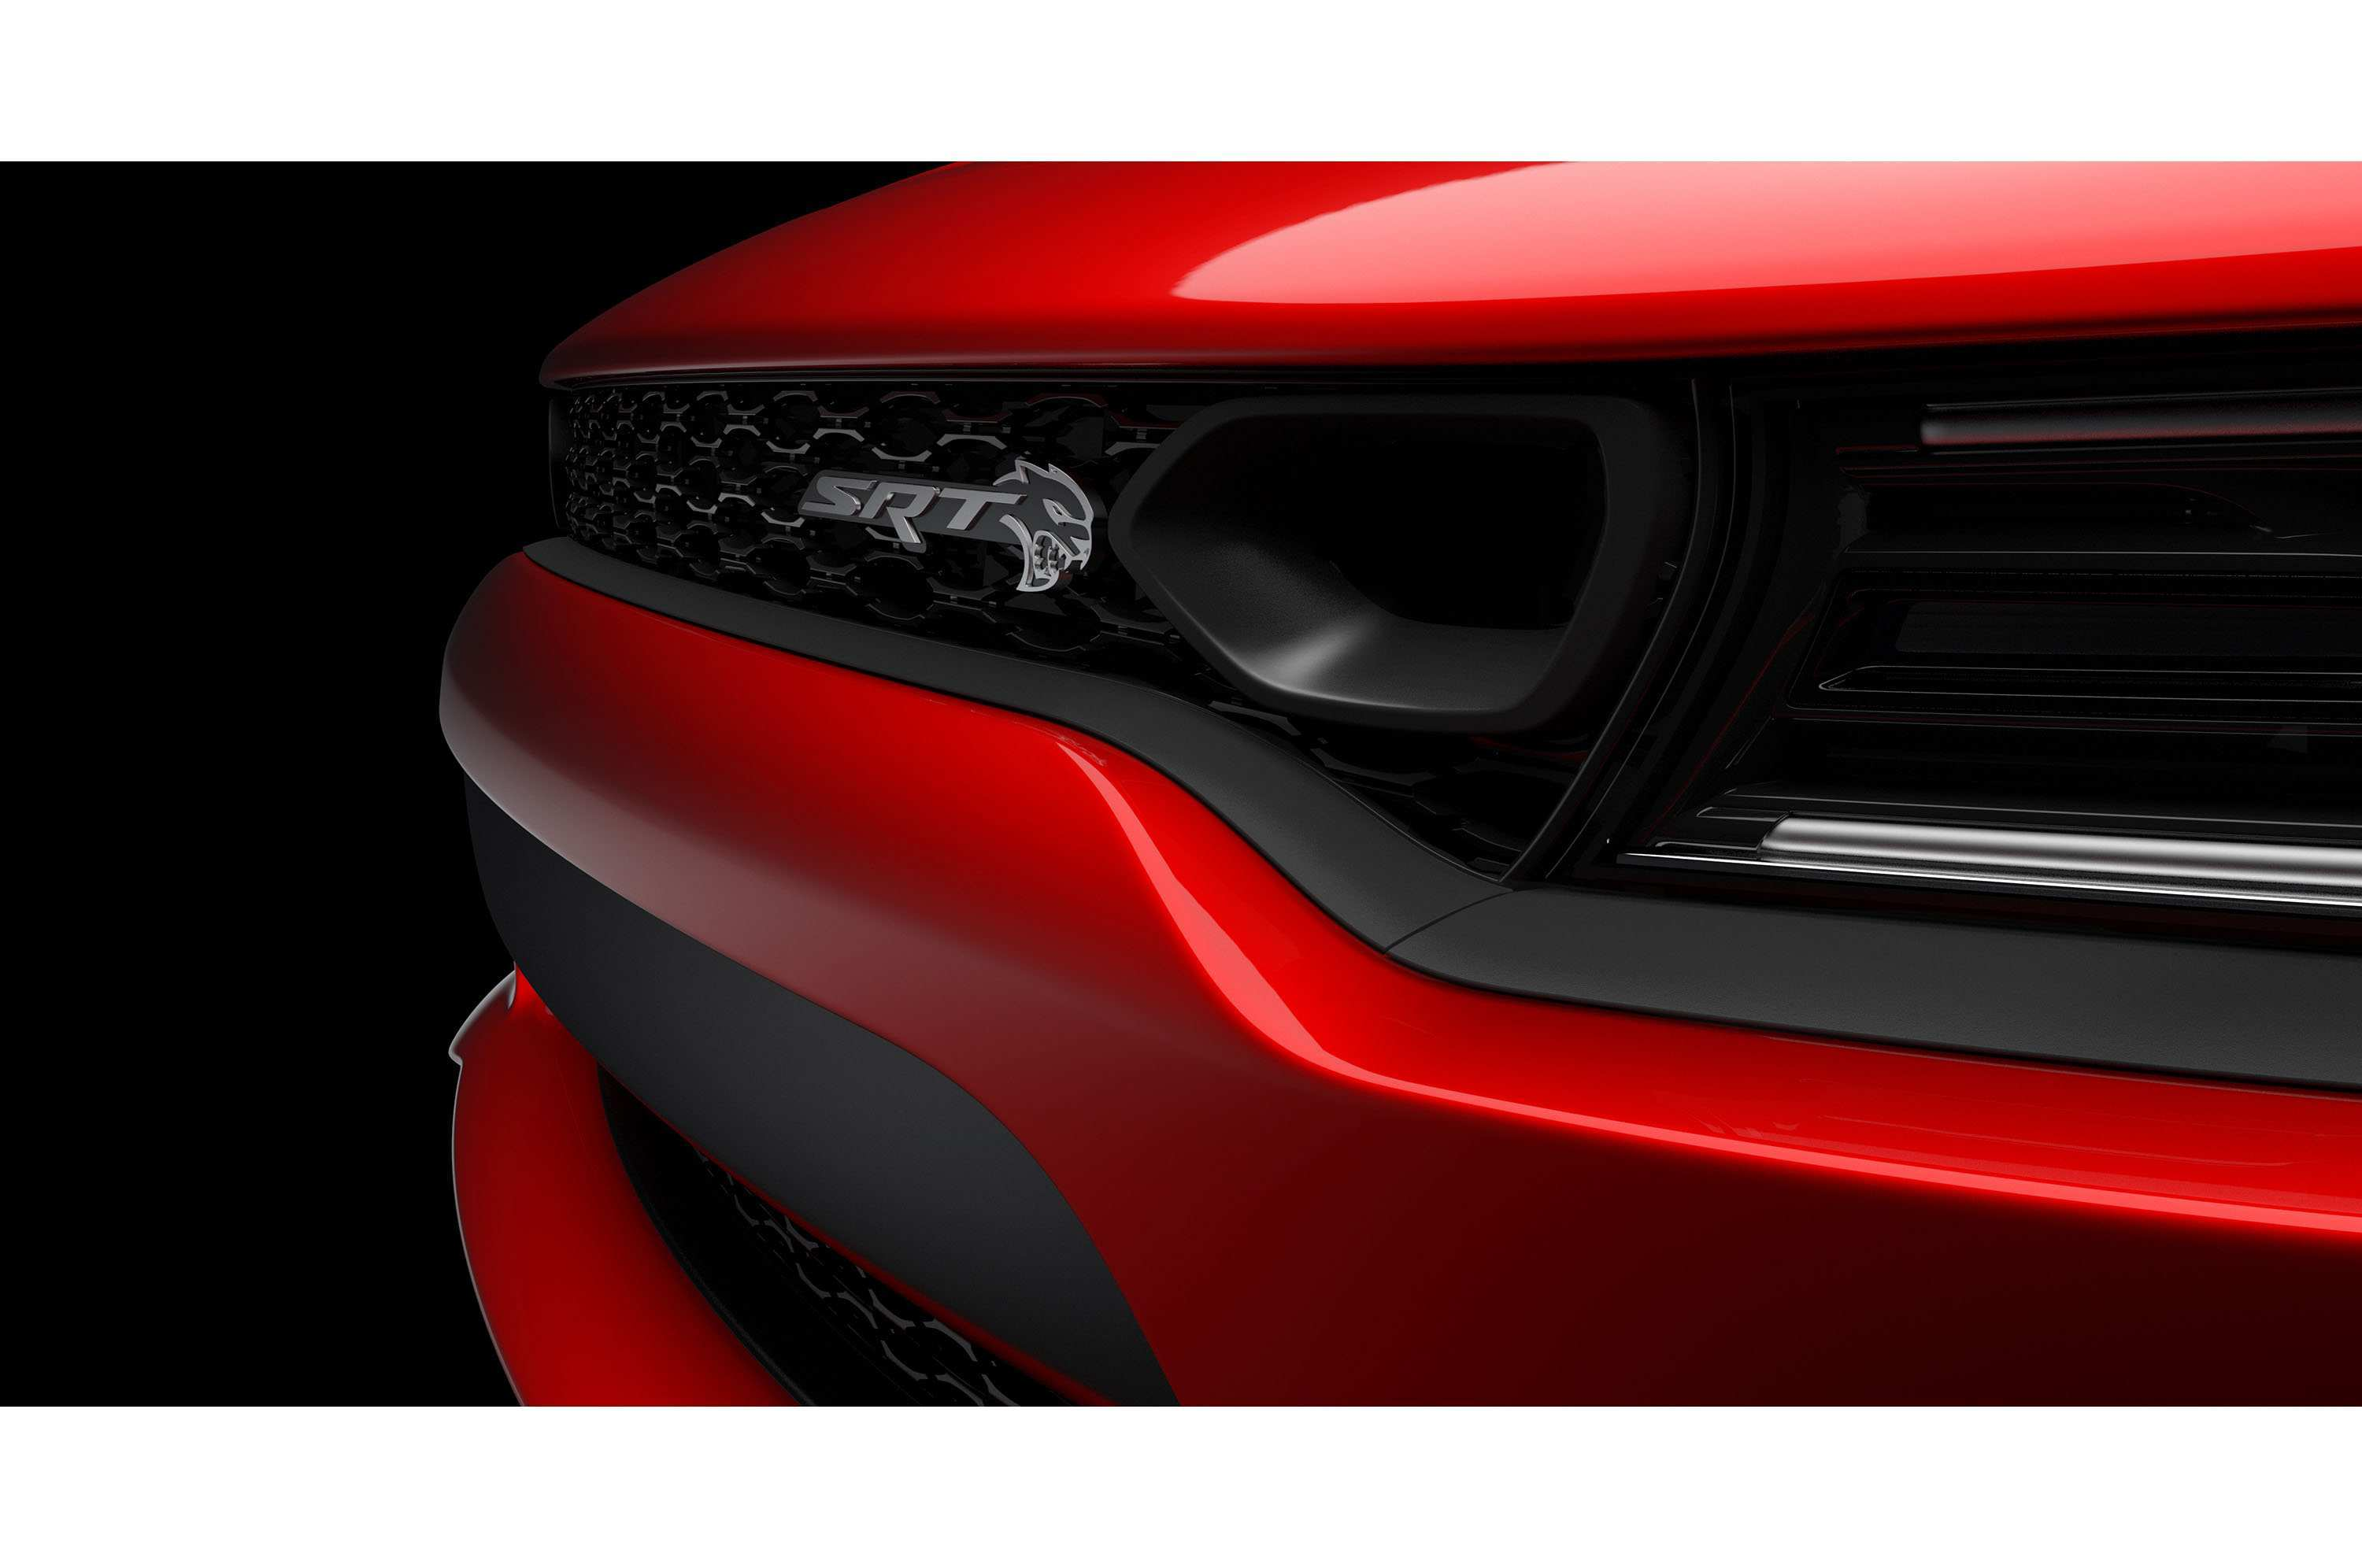 38 Great 2019 Ferrari Charger Photos for 2019 Ferrari Charger